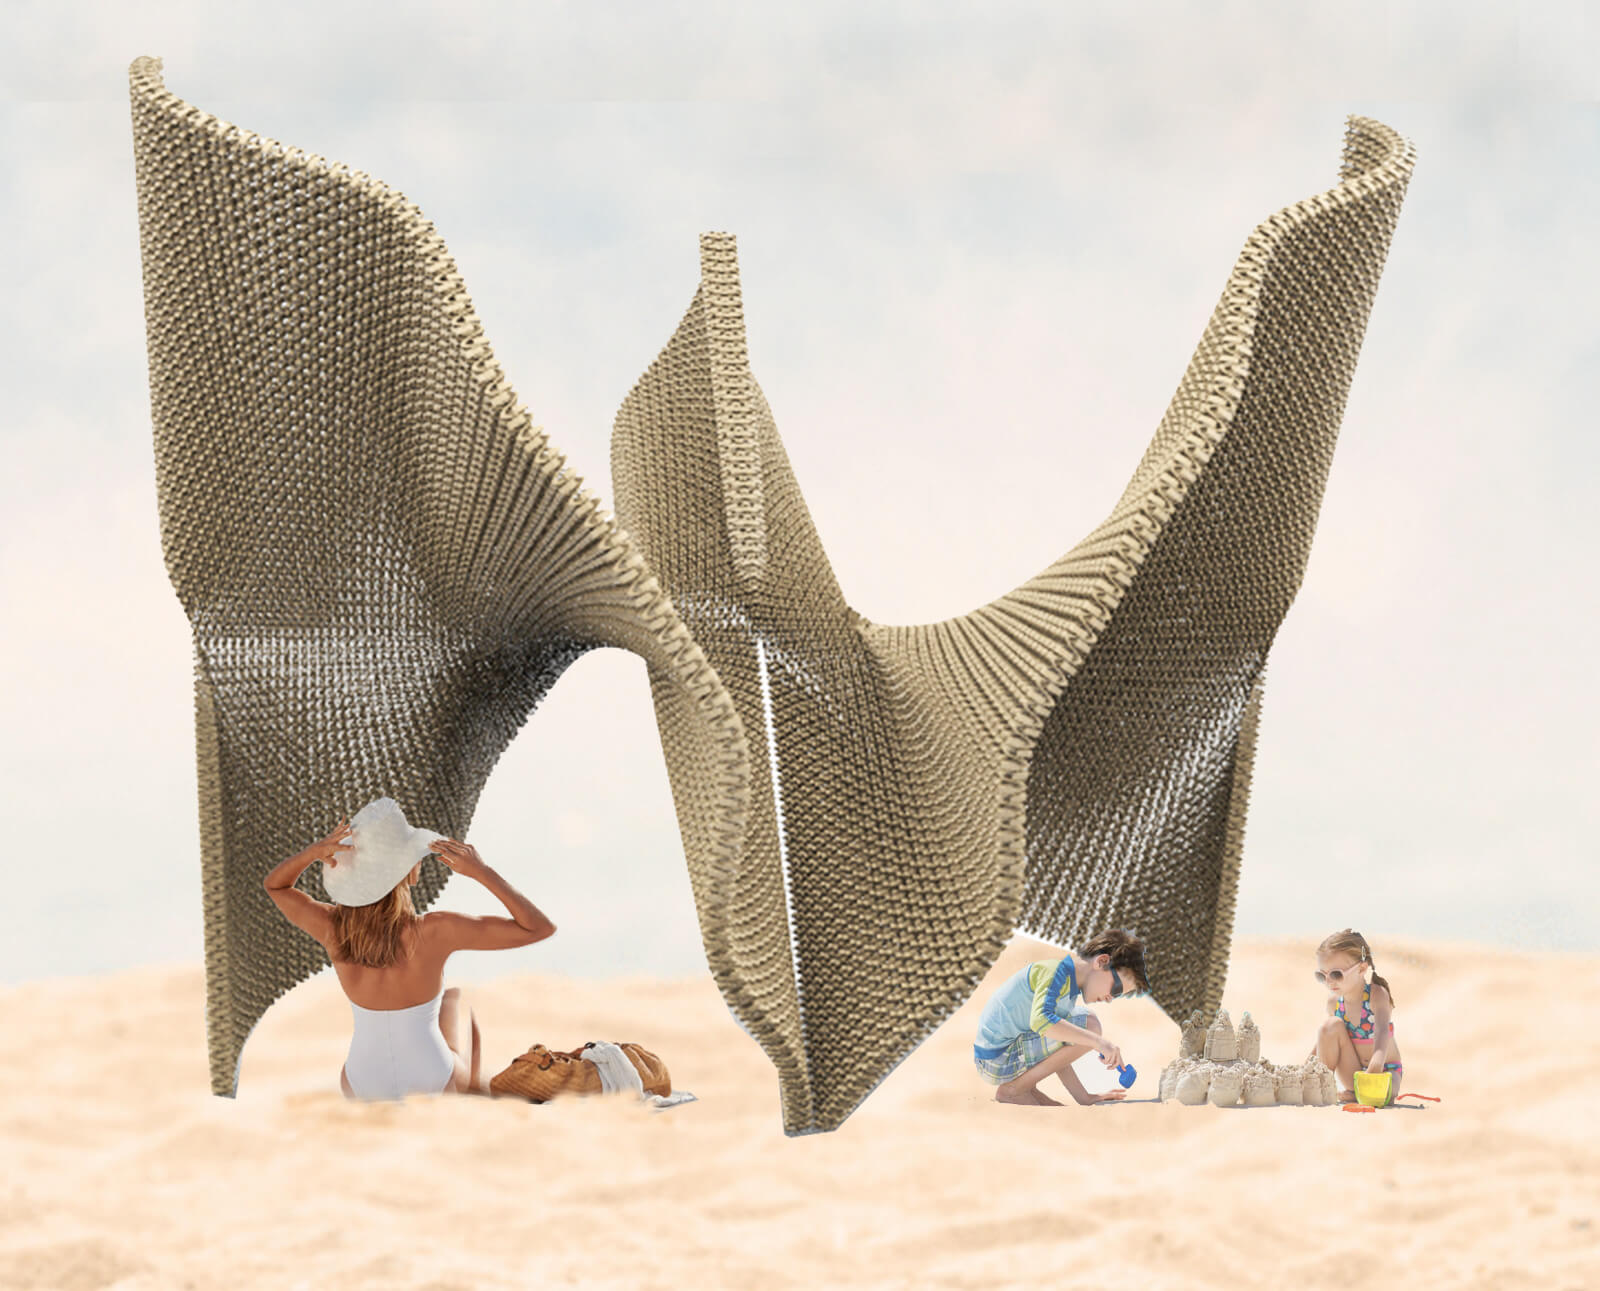 Another iteration of the conceptual pavilion to harness different beach activities | Cross Border Conversations | STIR X LOCO Design | STIRworld